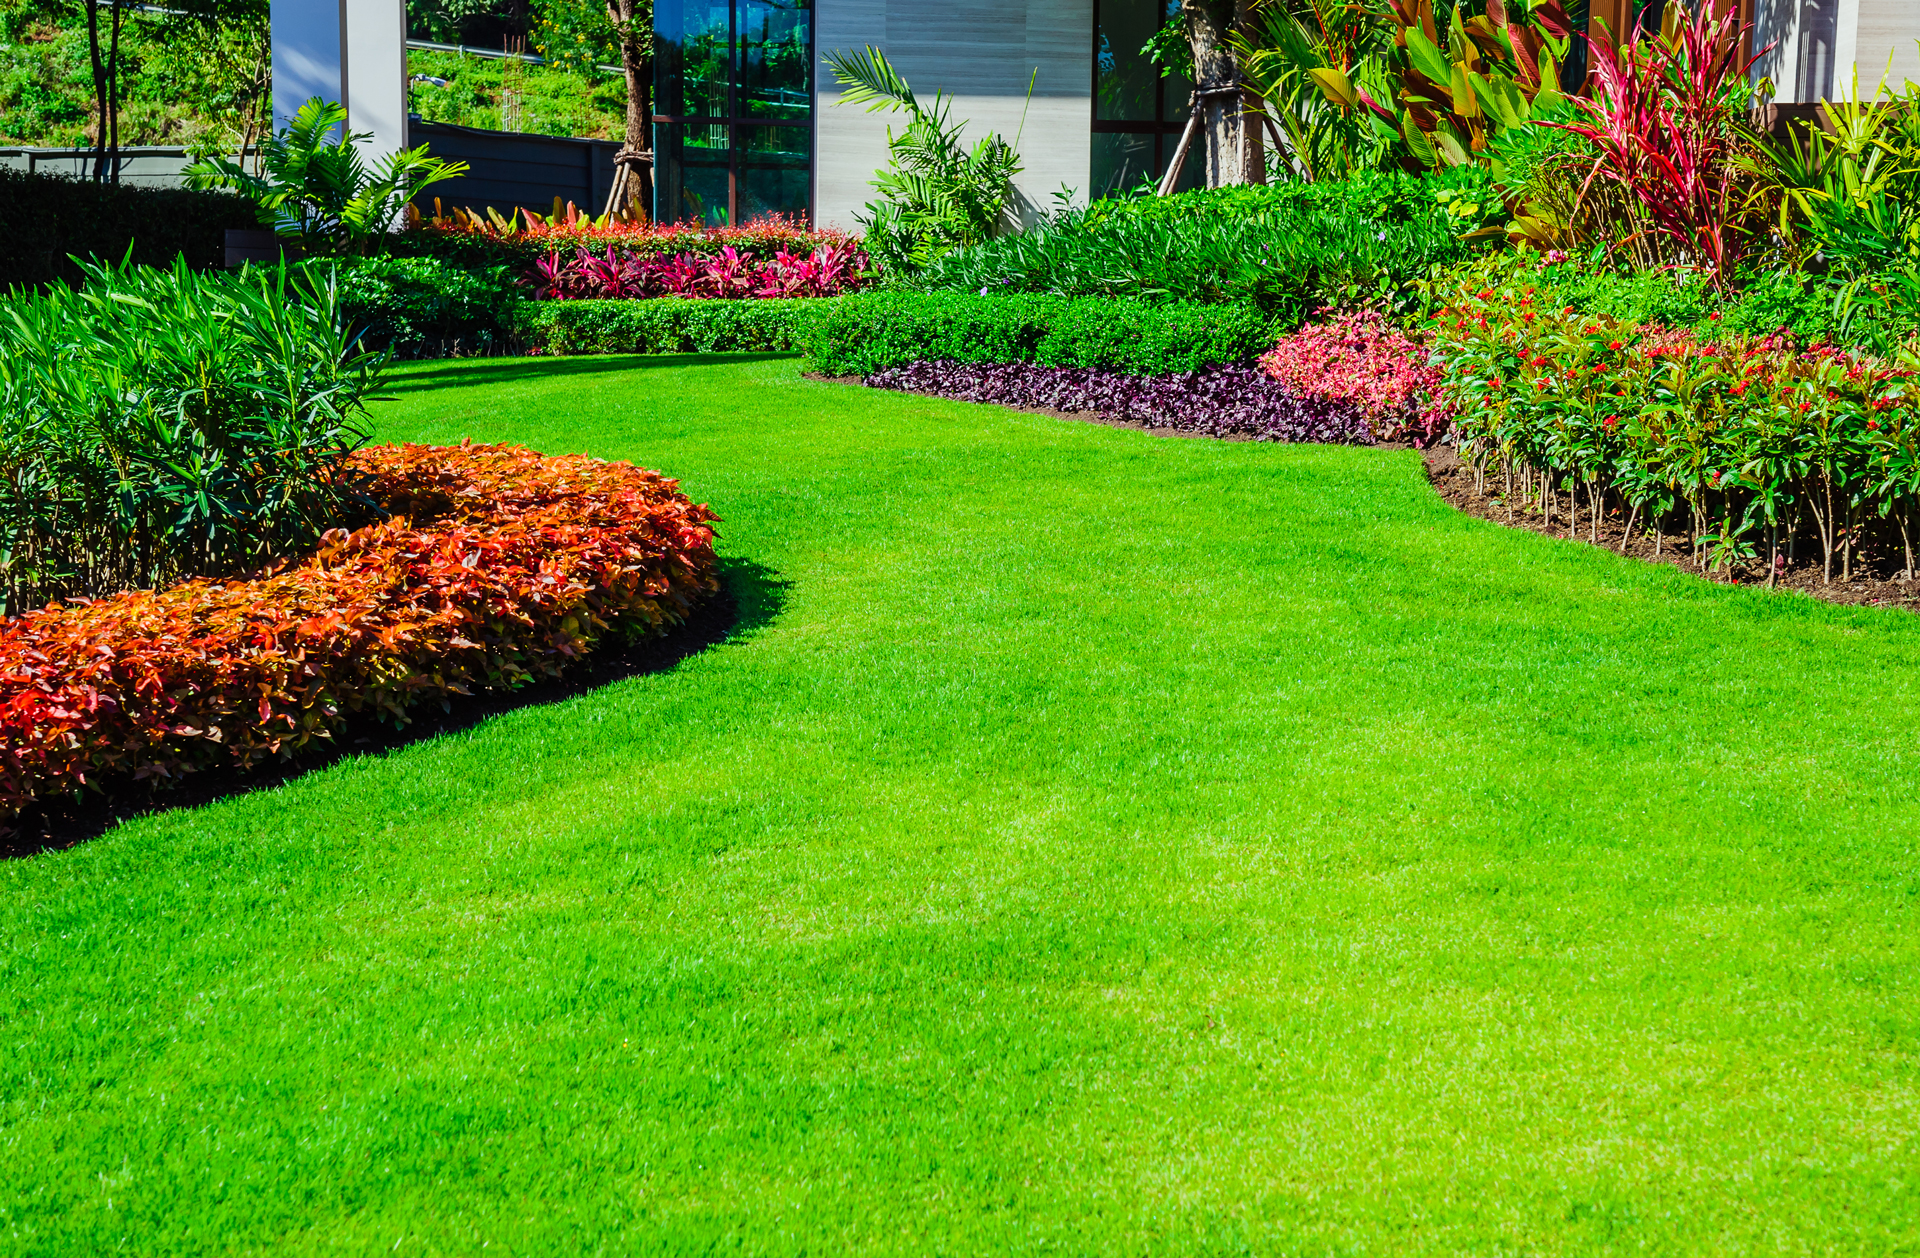 Zeon And Other Hybrid Zoysia Grasses